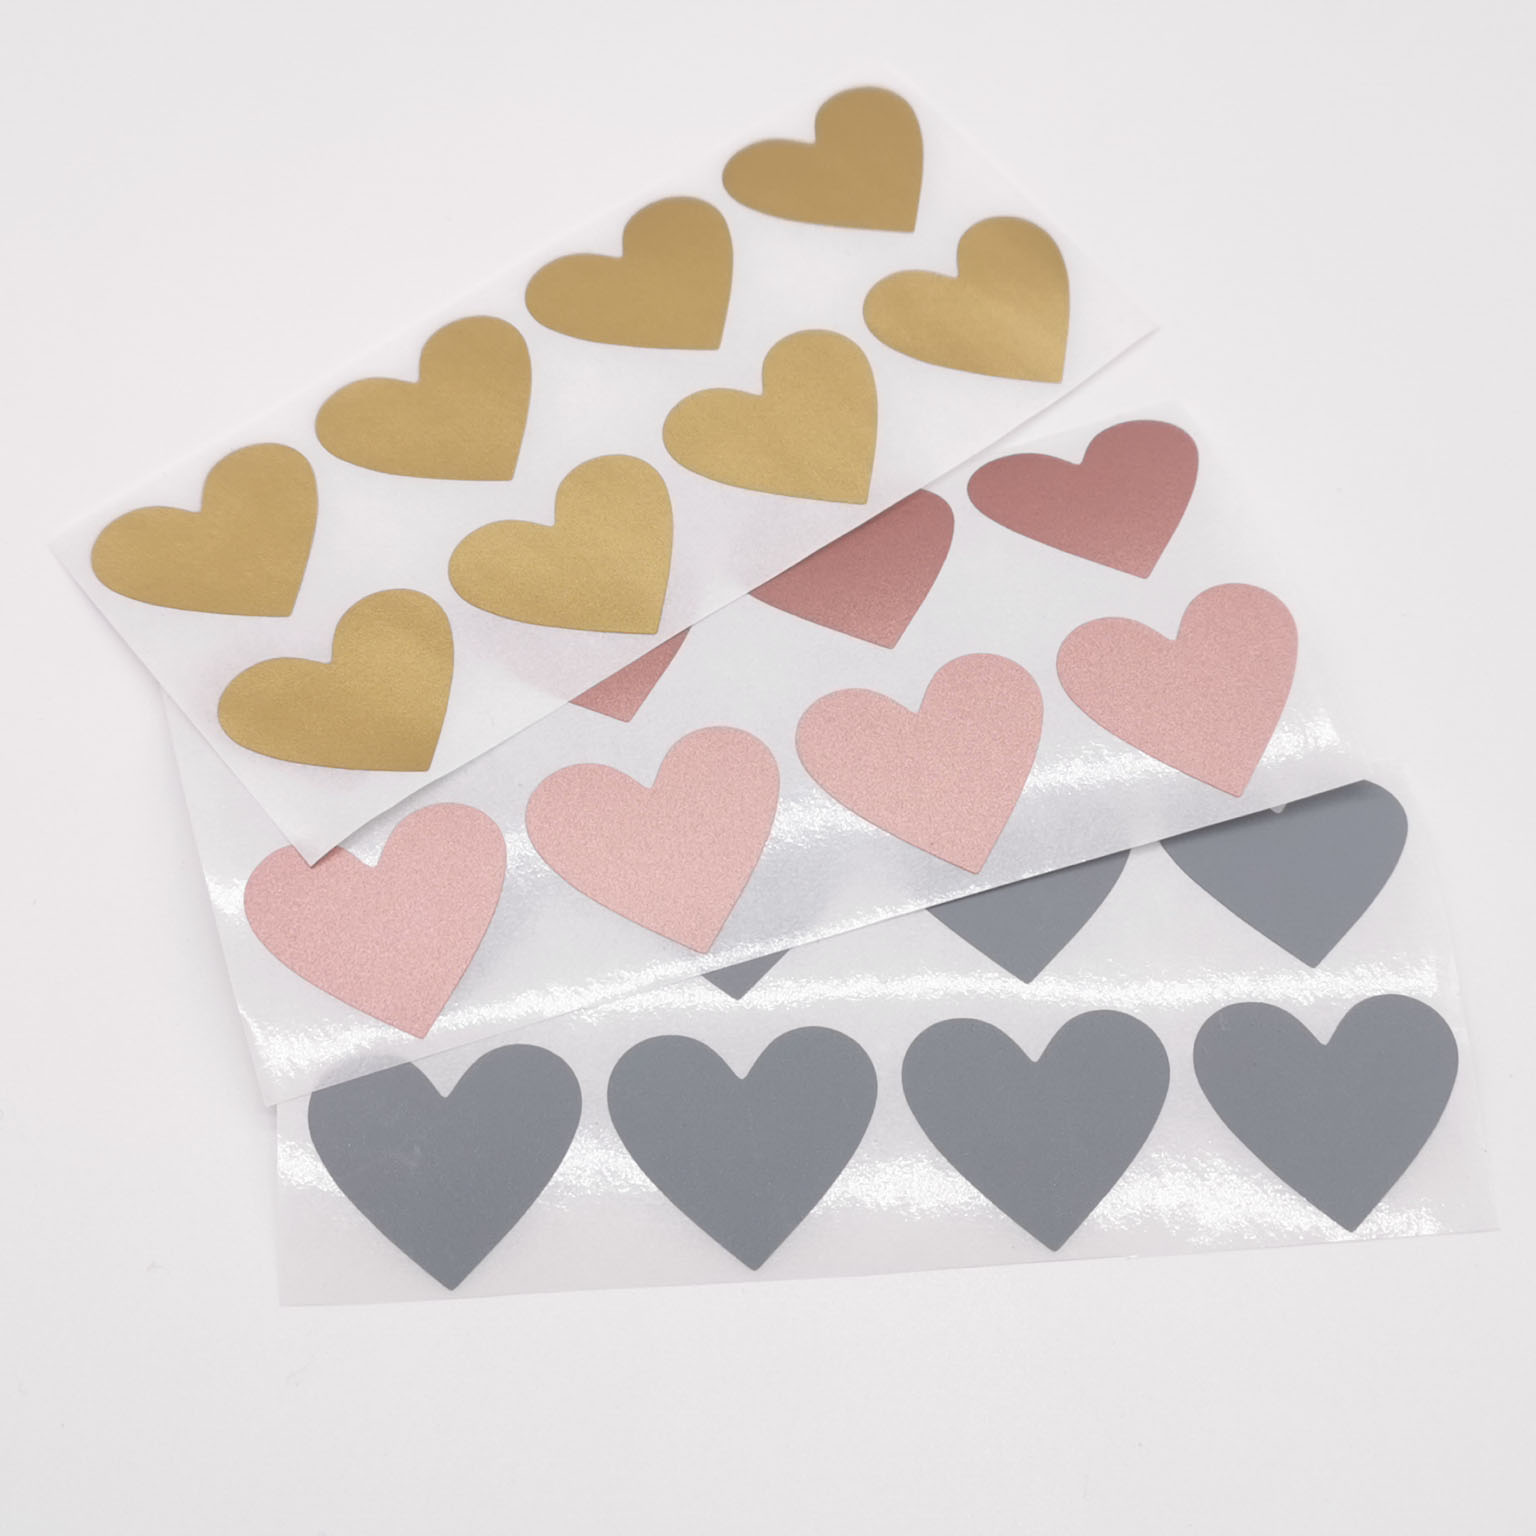 100pcs Heart Shaped Rose Gold Scratch Off Stickers Silver Labels Sticker For Party Activity Game Favors Stationery Sticker